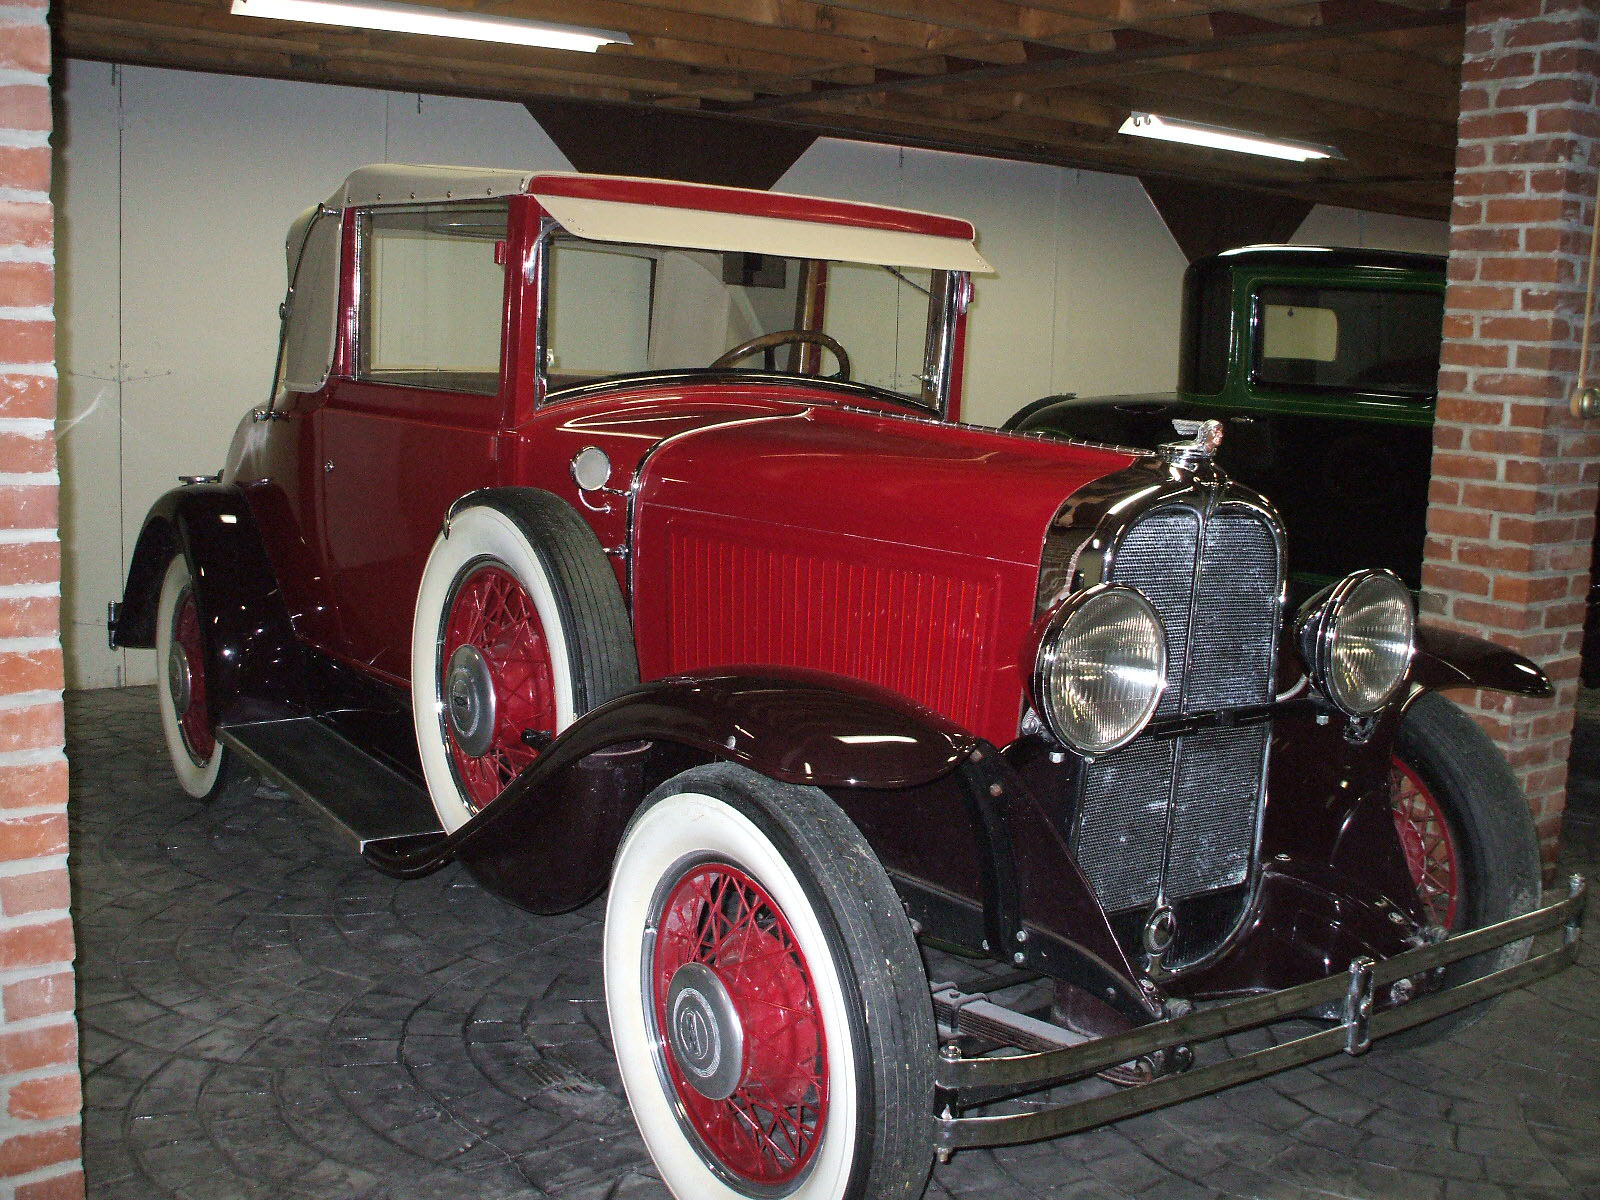 Automobiles - The Collings Foundation